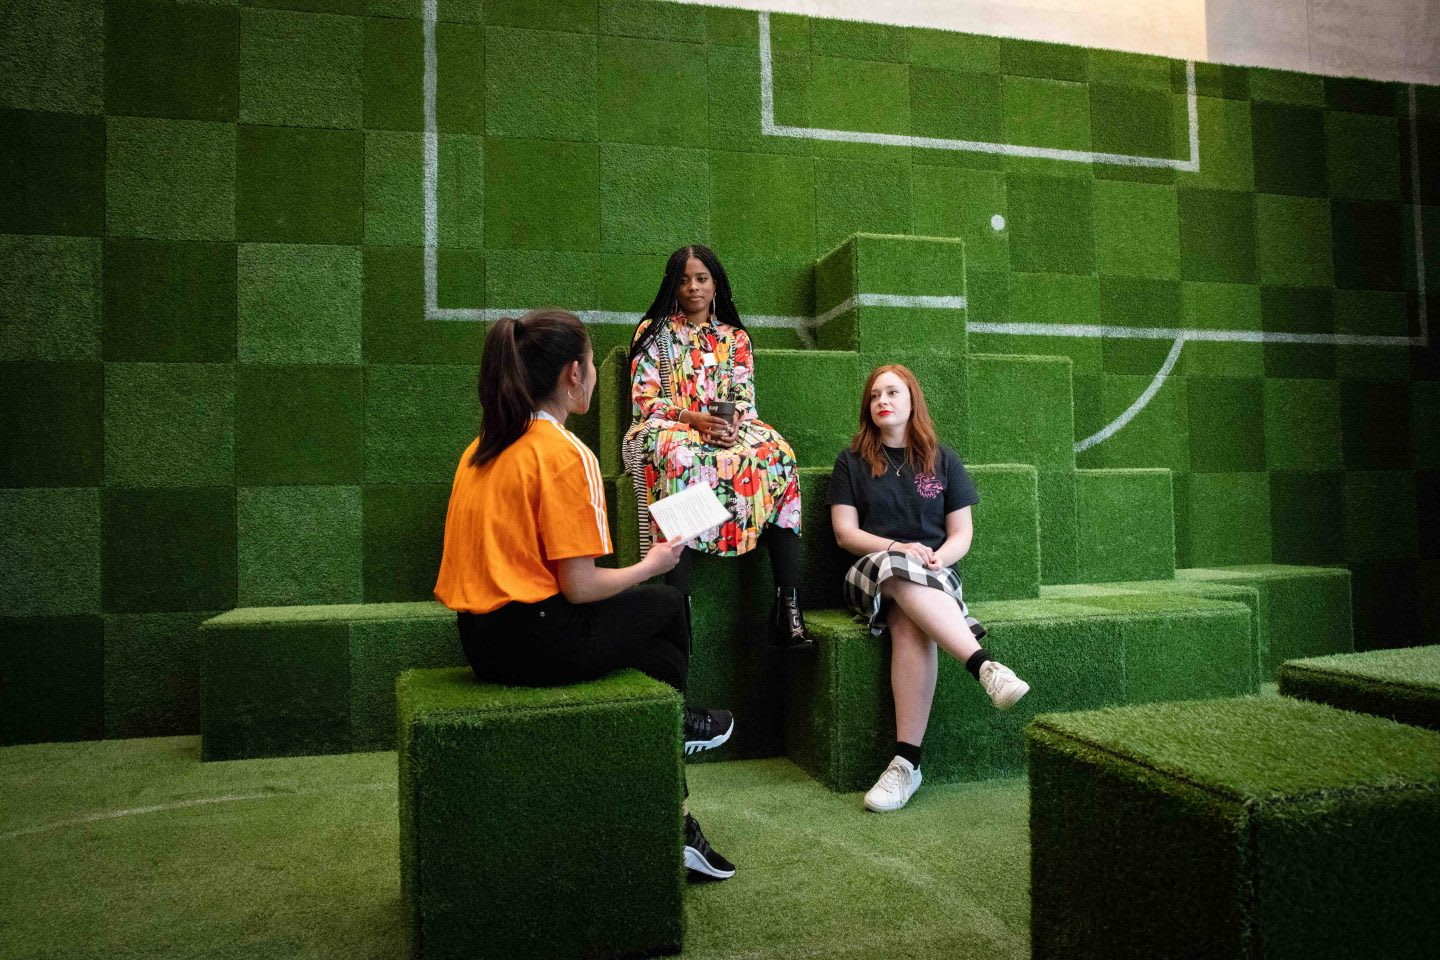 An interview situation in an adidas meeting room, which looks like a football pitch. Three women are chatting with each other. female fan, empowerment, diversity, platform, adidas, football, GamePlan A, SEASON zine